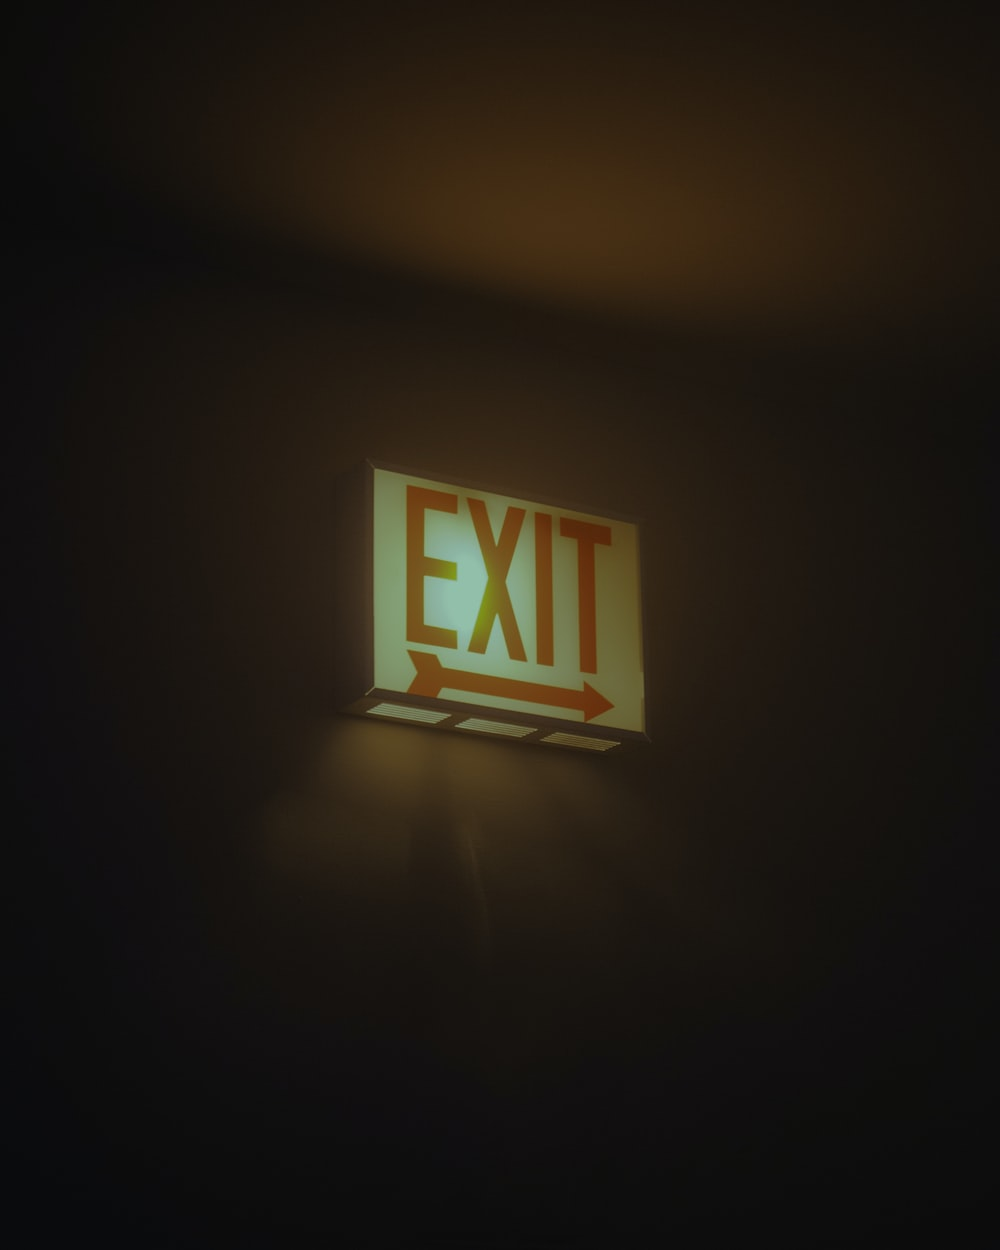 white and red Exit signage